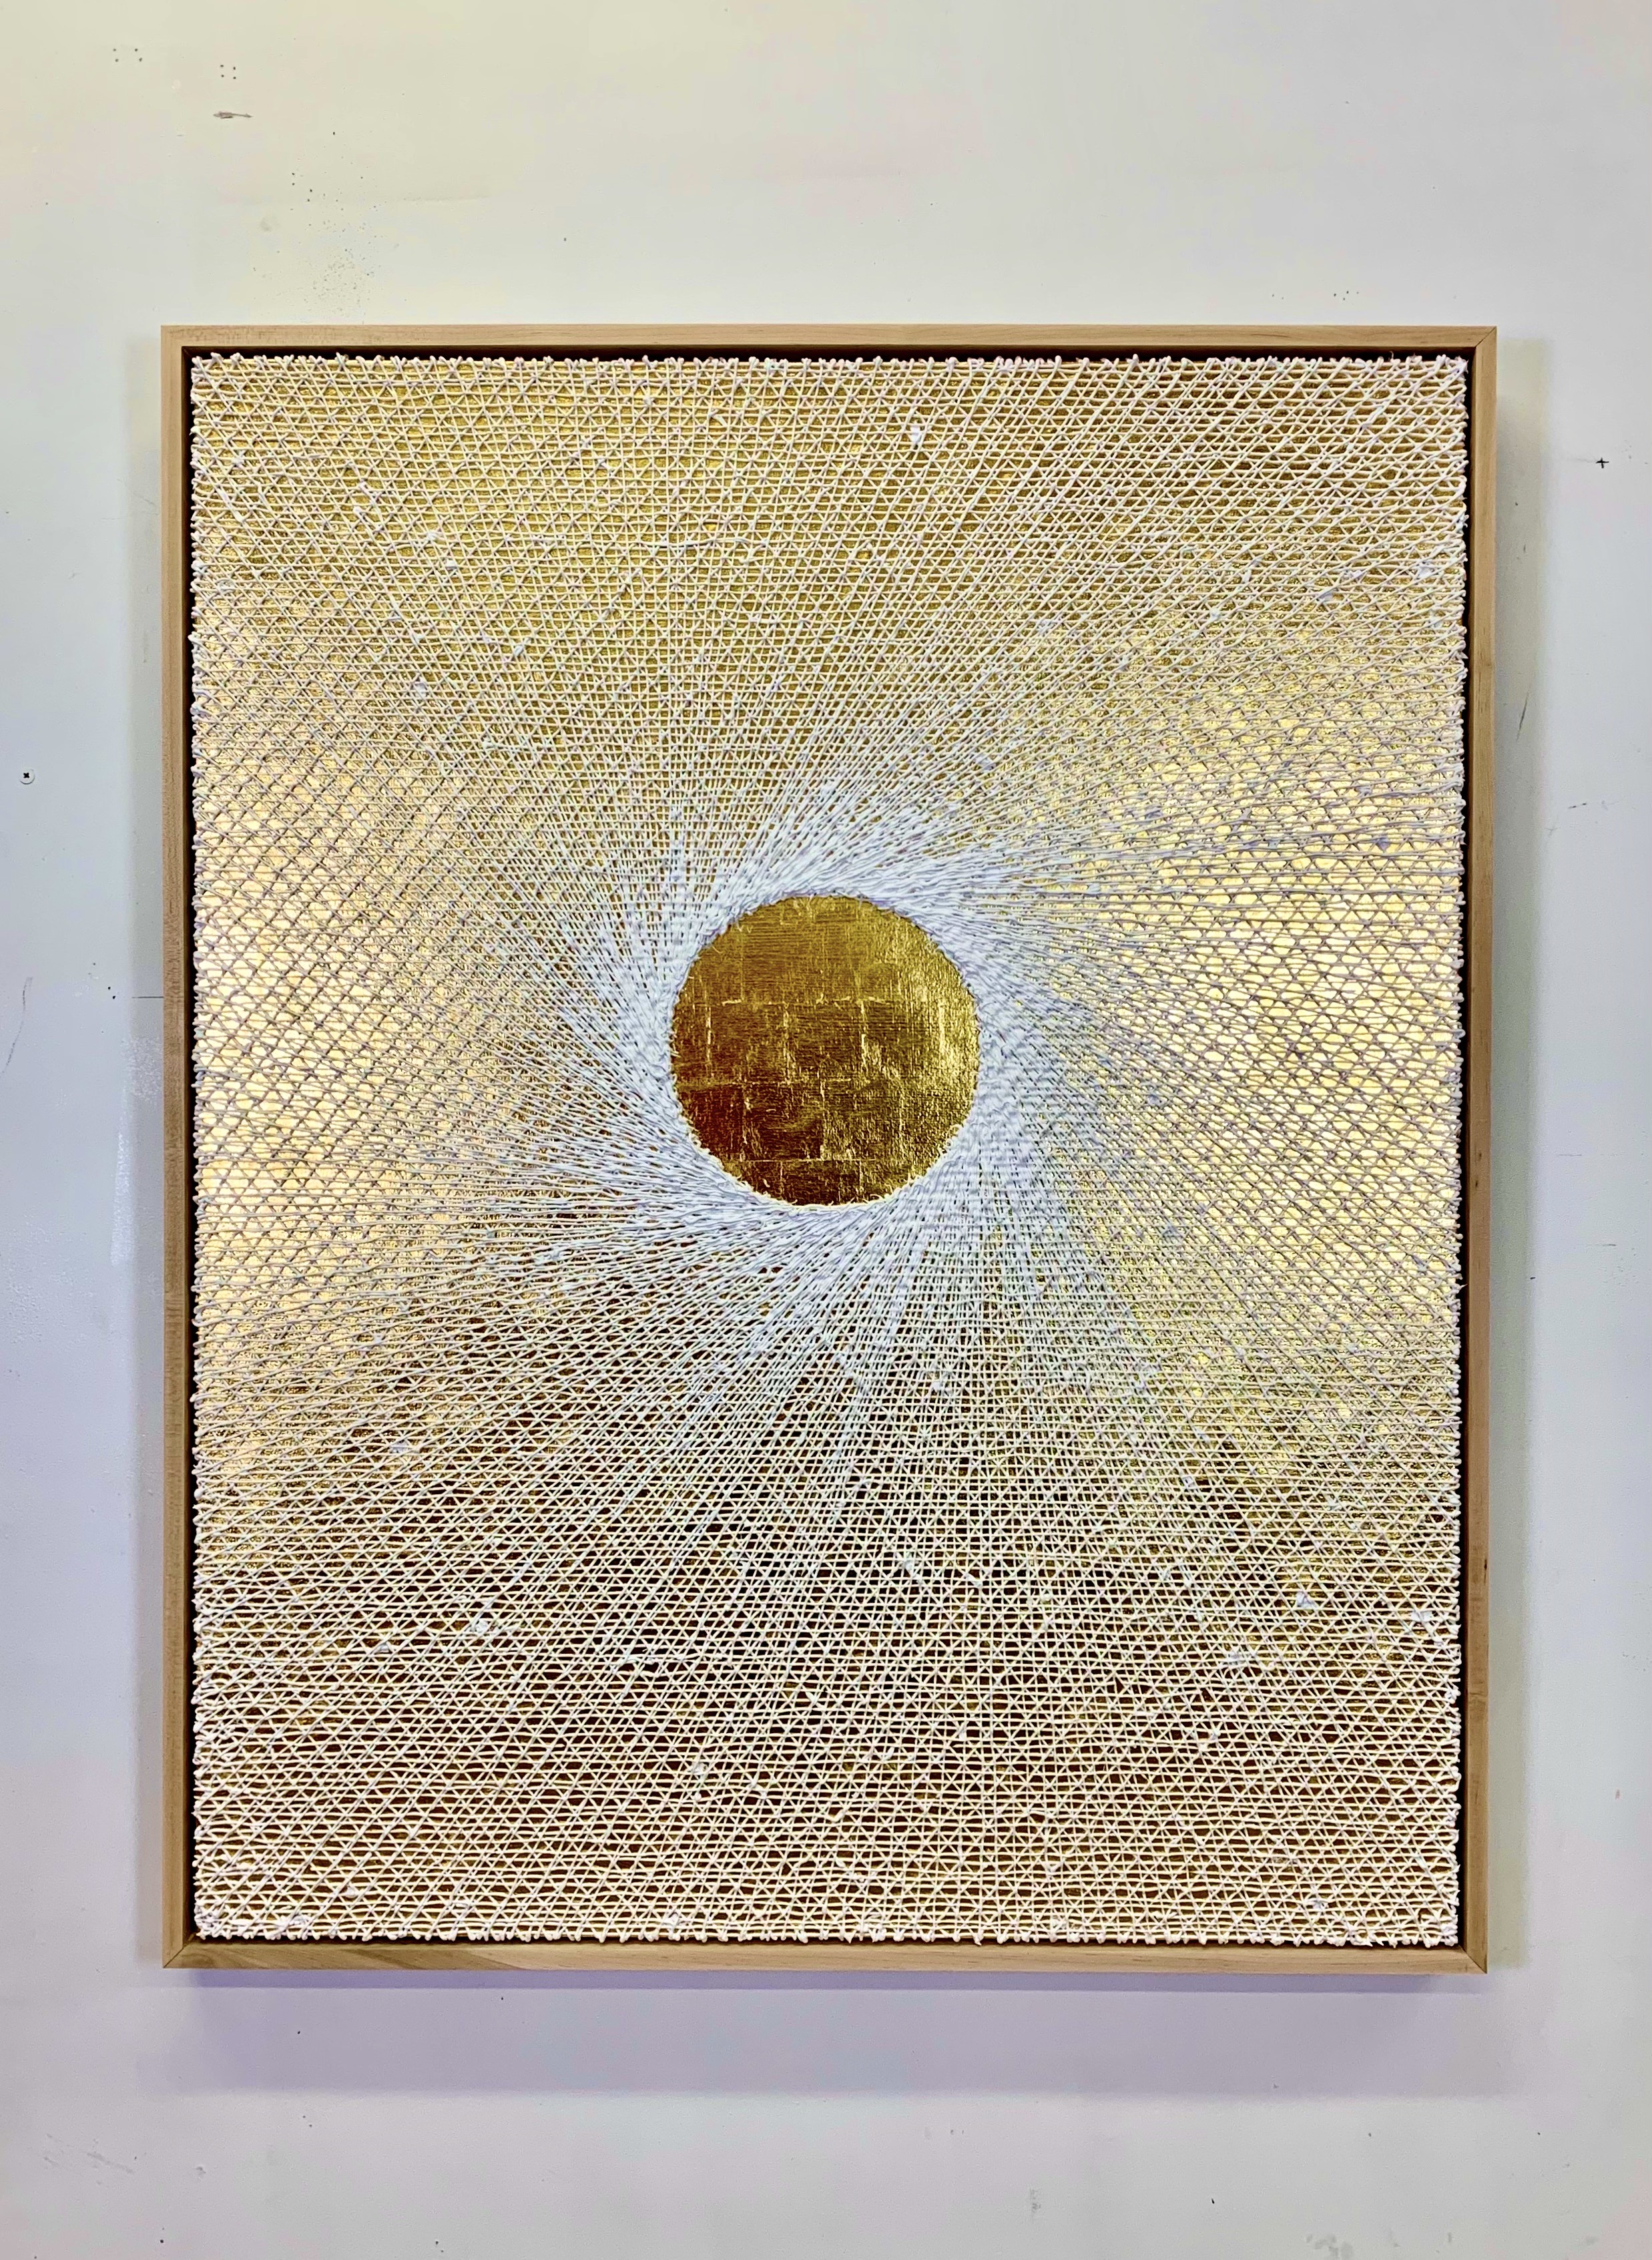 Michael Brown 2020 Oil on 24k gold on canvas mounted to panel 62 x 50 x 3 in. 2021 Marc Straus Gallery